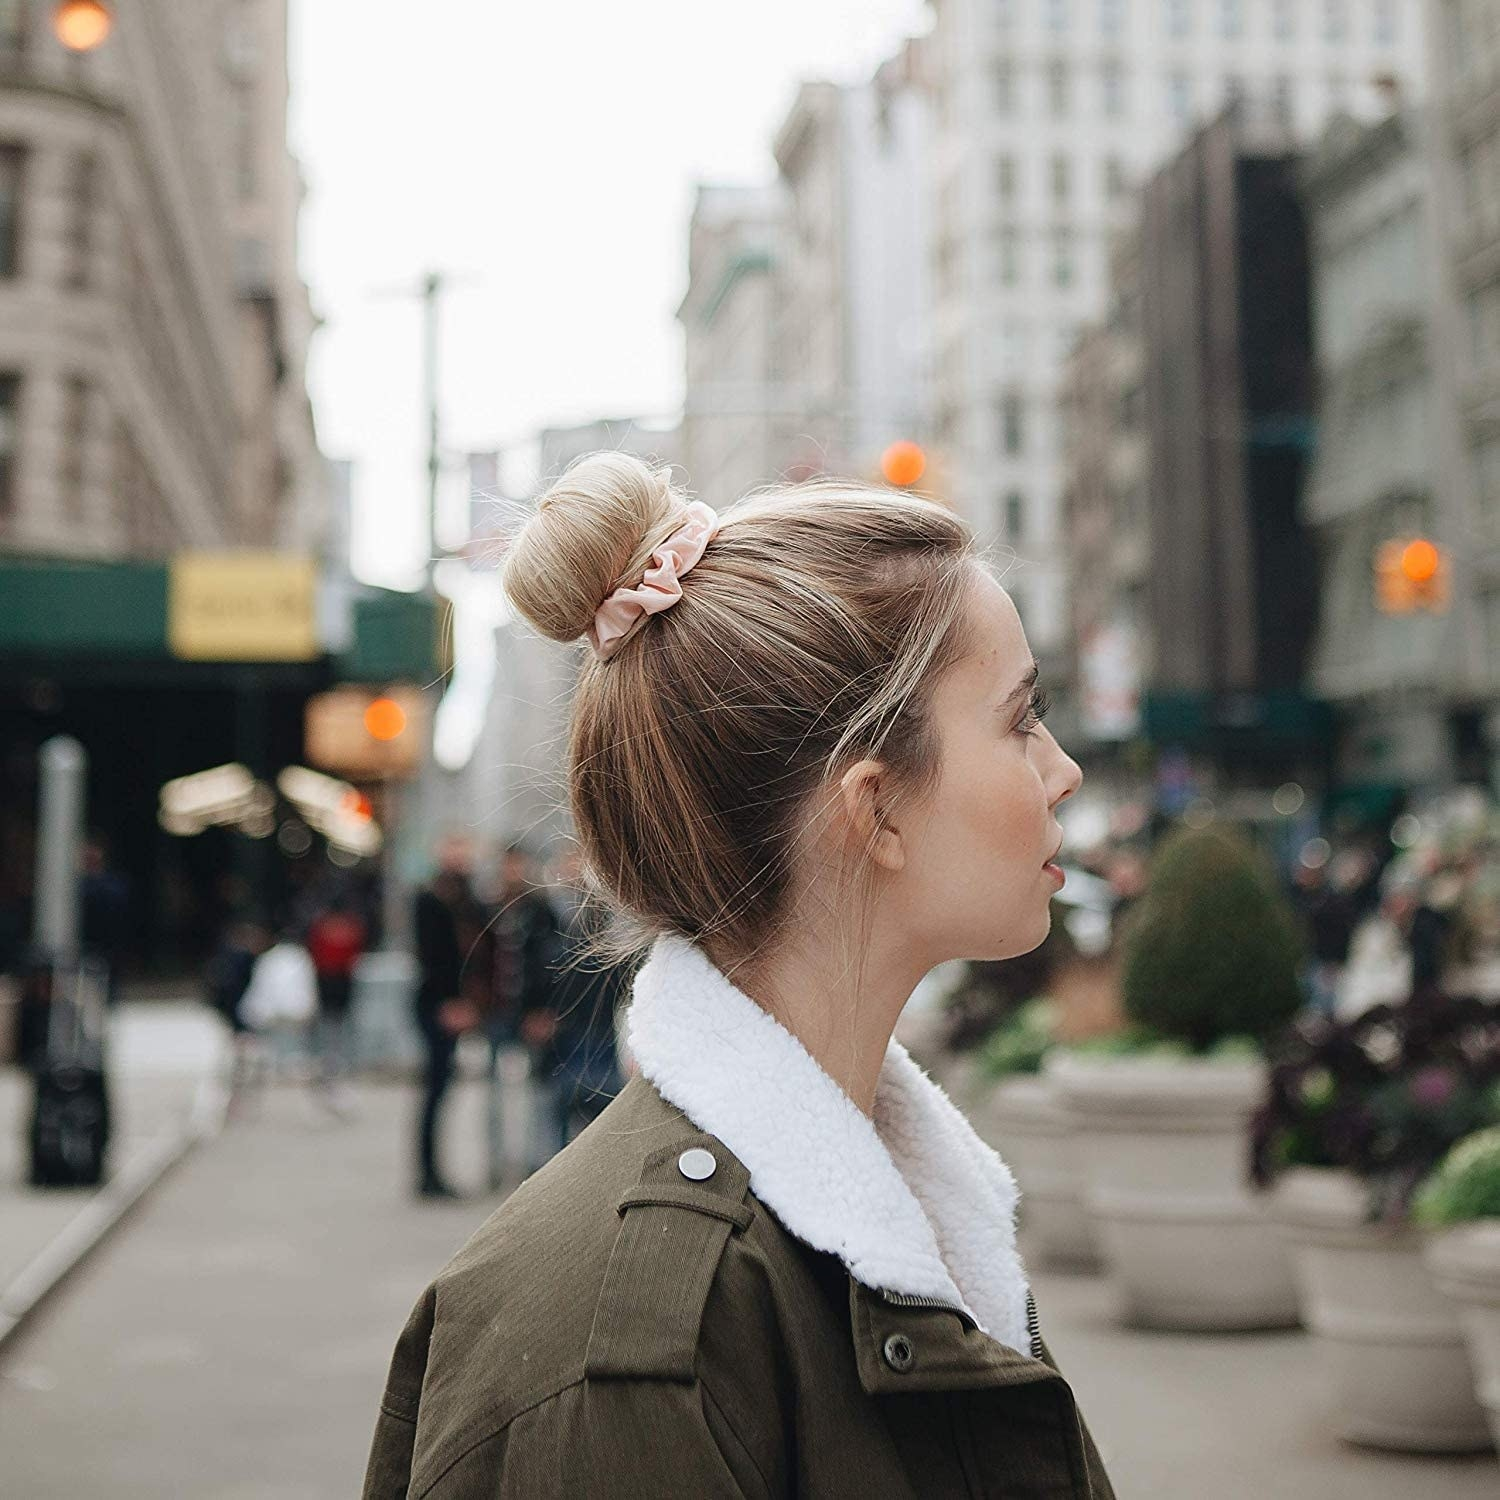 A person using a slim scrunchie to hold their bun in place